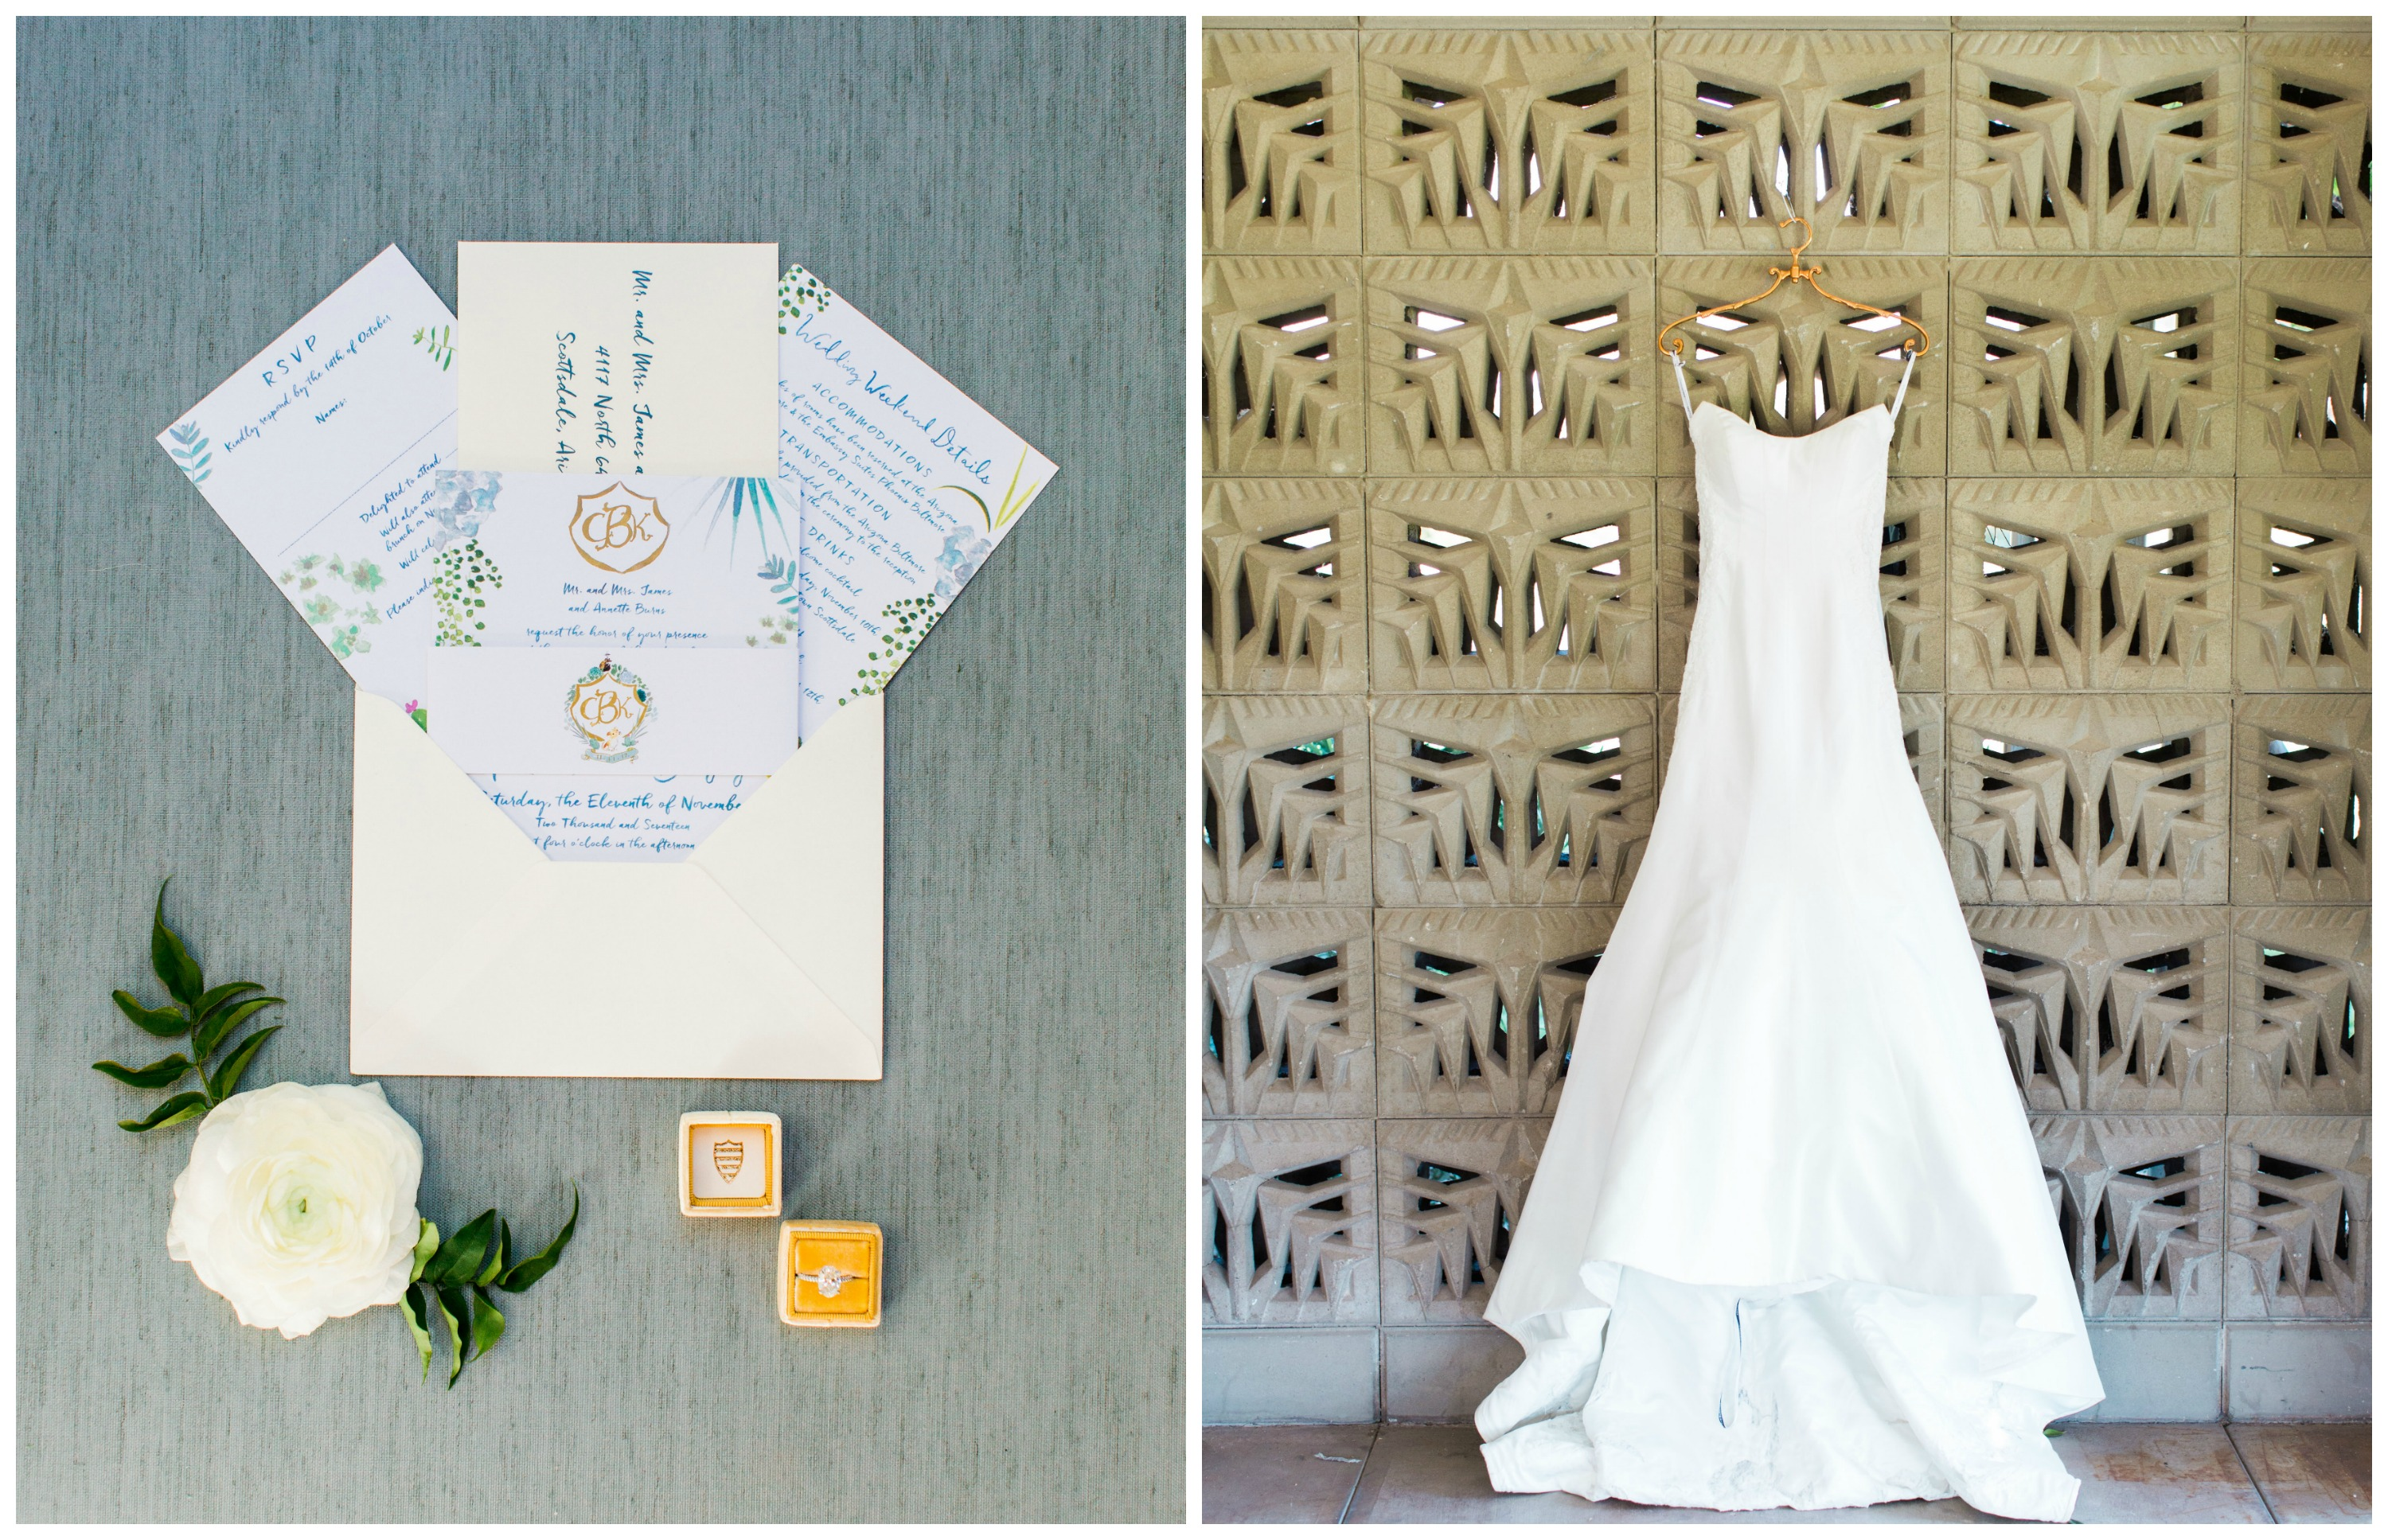 Arizona Biltmore Wedding | Phoenix Wedding Planner